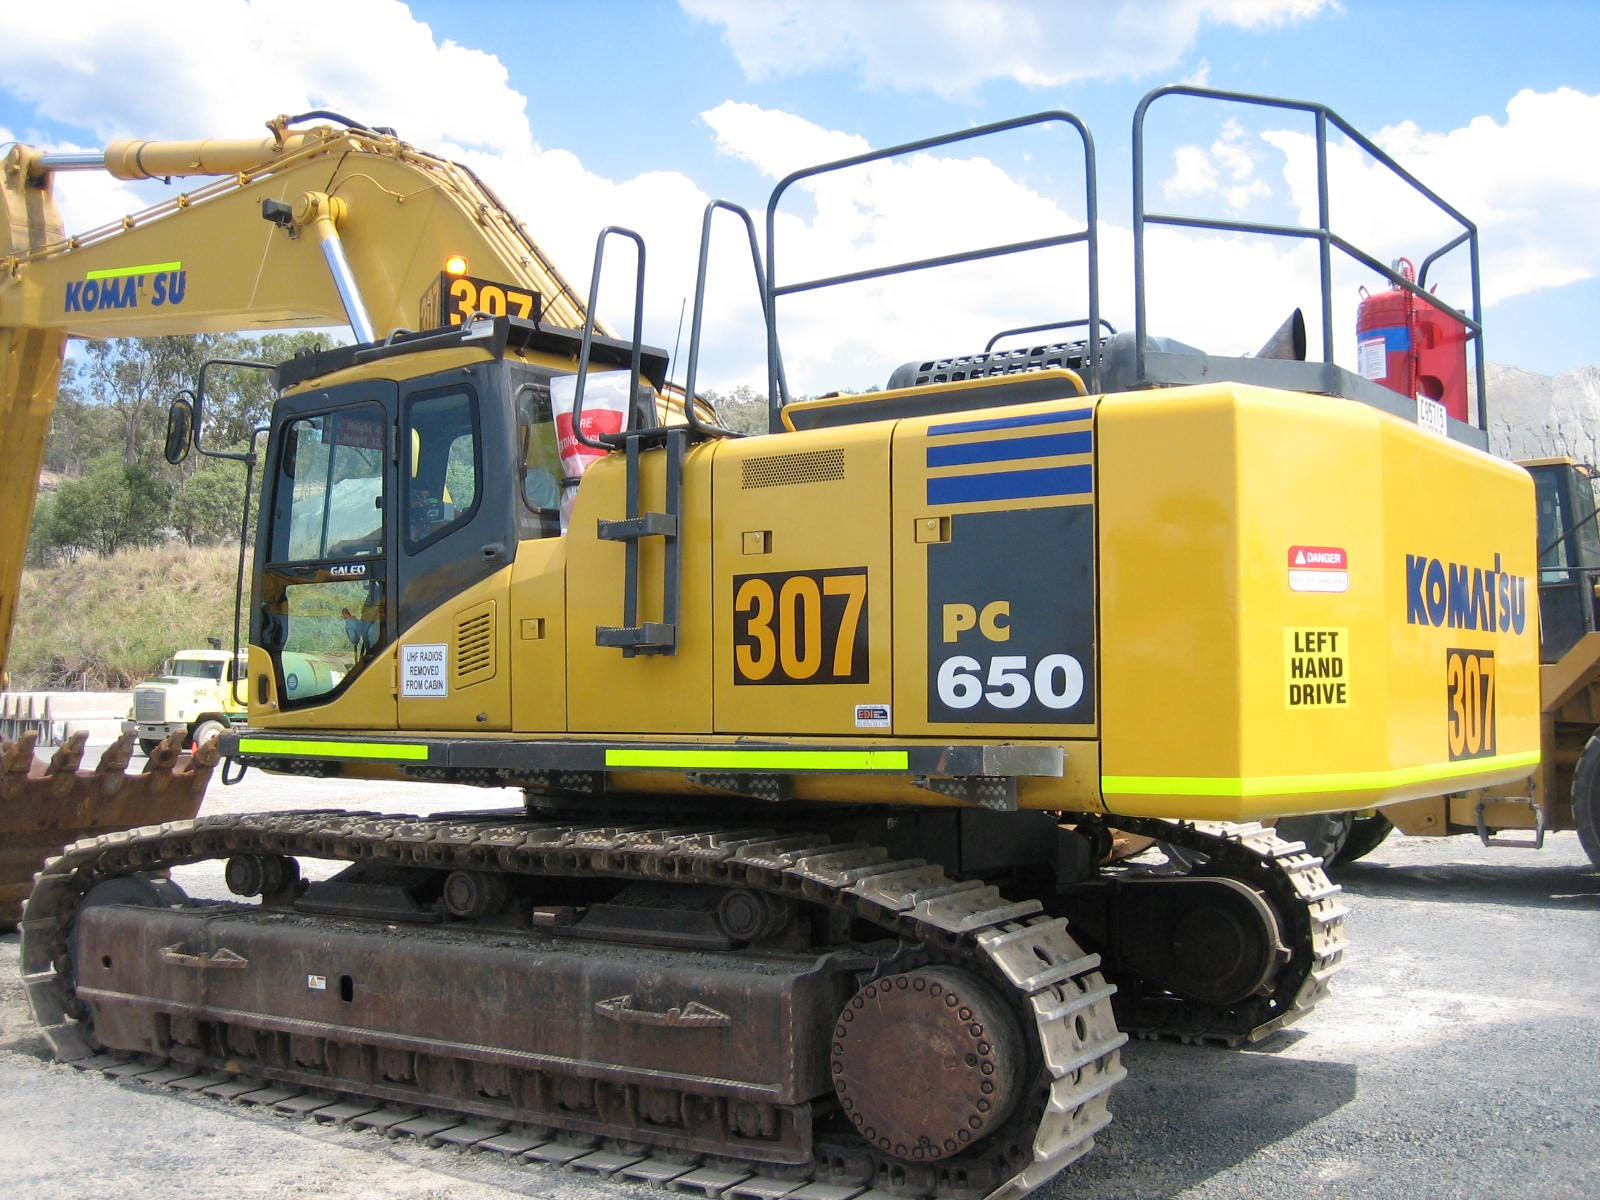 50t - 80t Excavator for hire - Thomas Kingsley Resources Pty Ltd